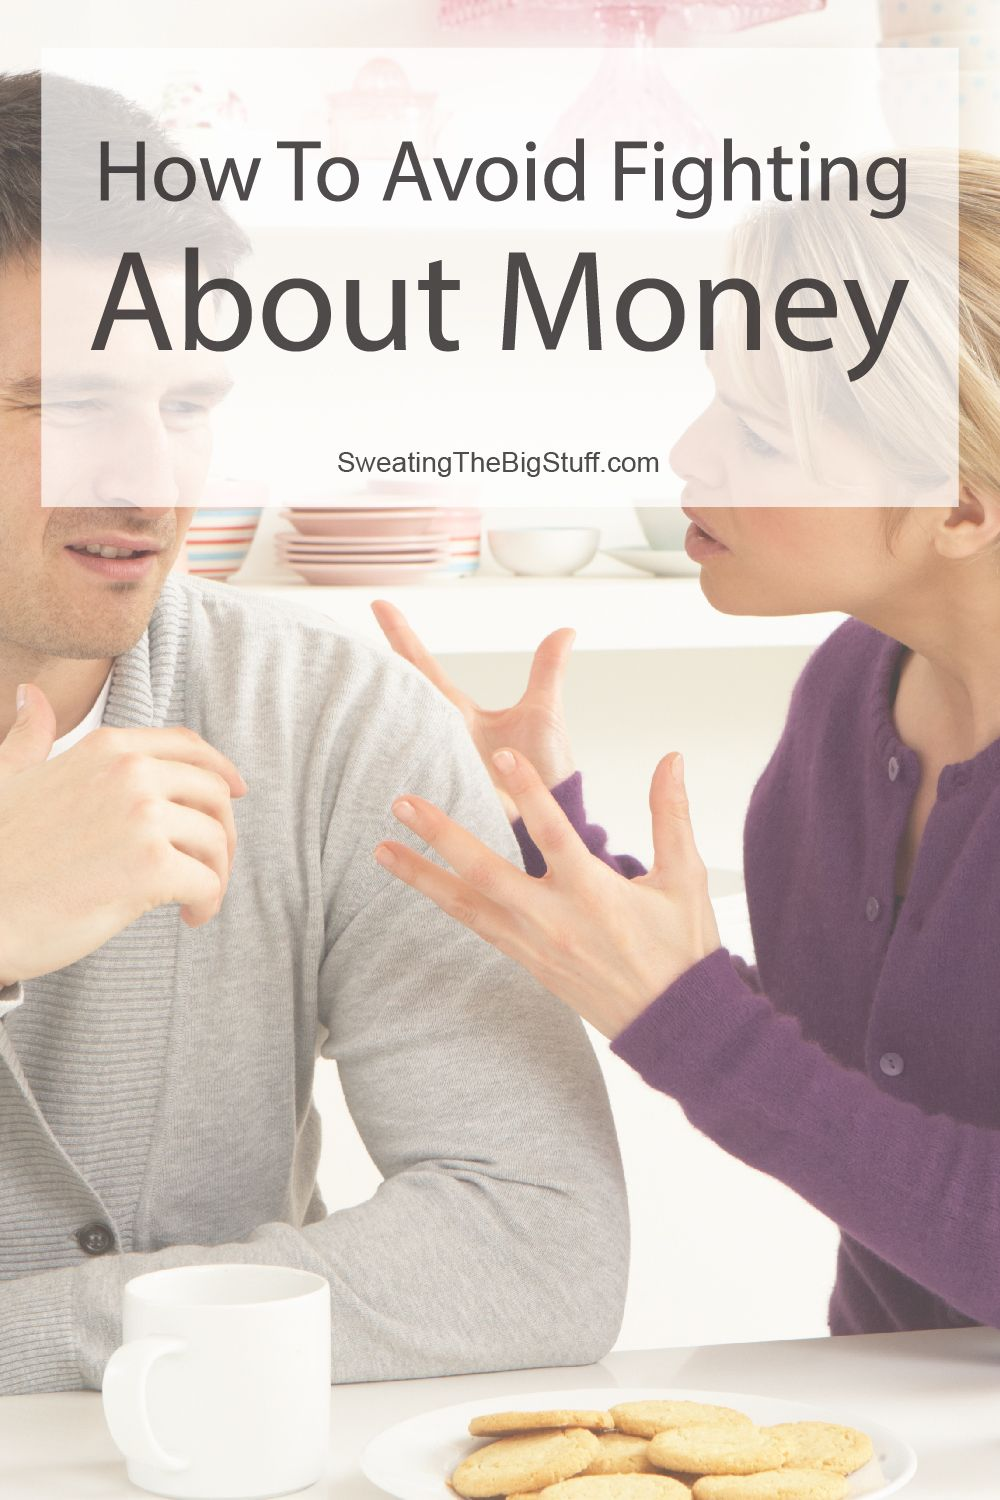 How to Avoid Fighting About Money With Your Spouse